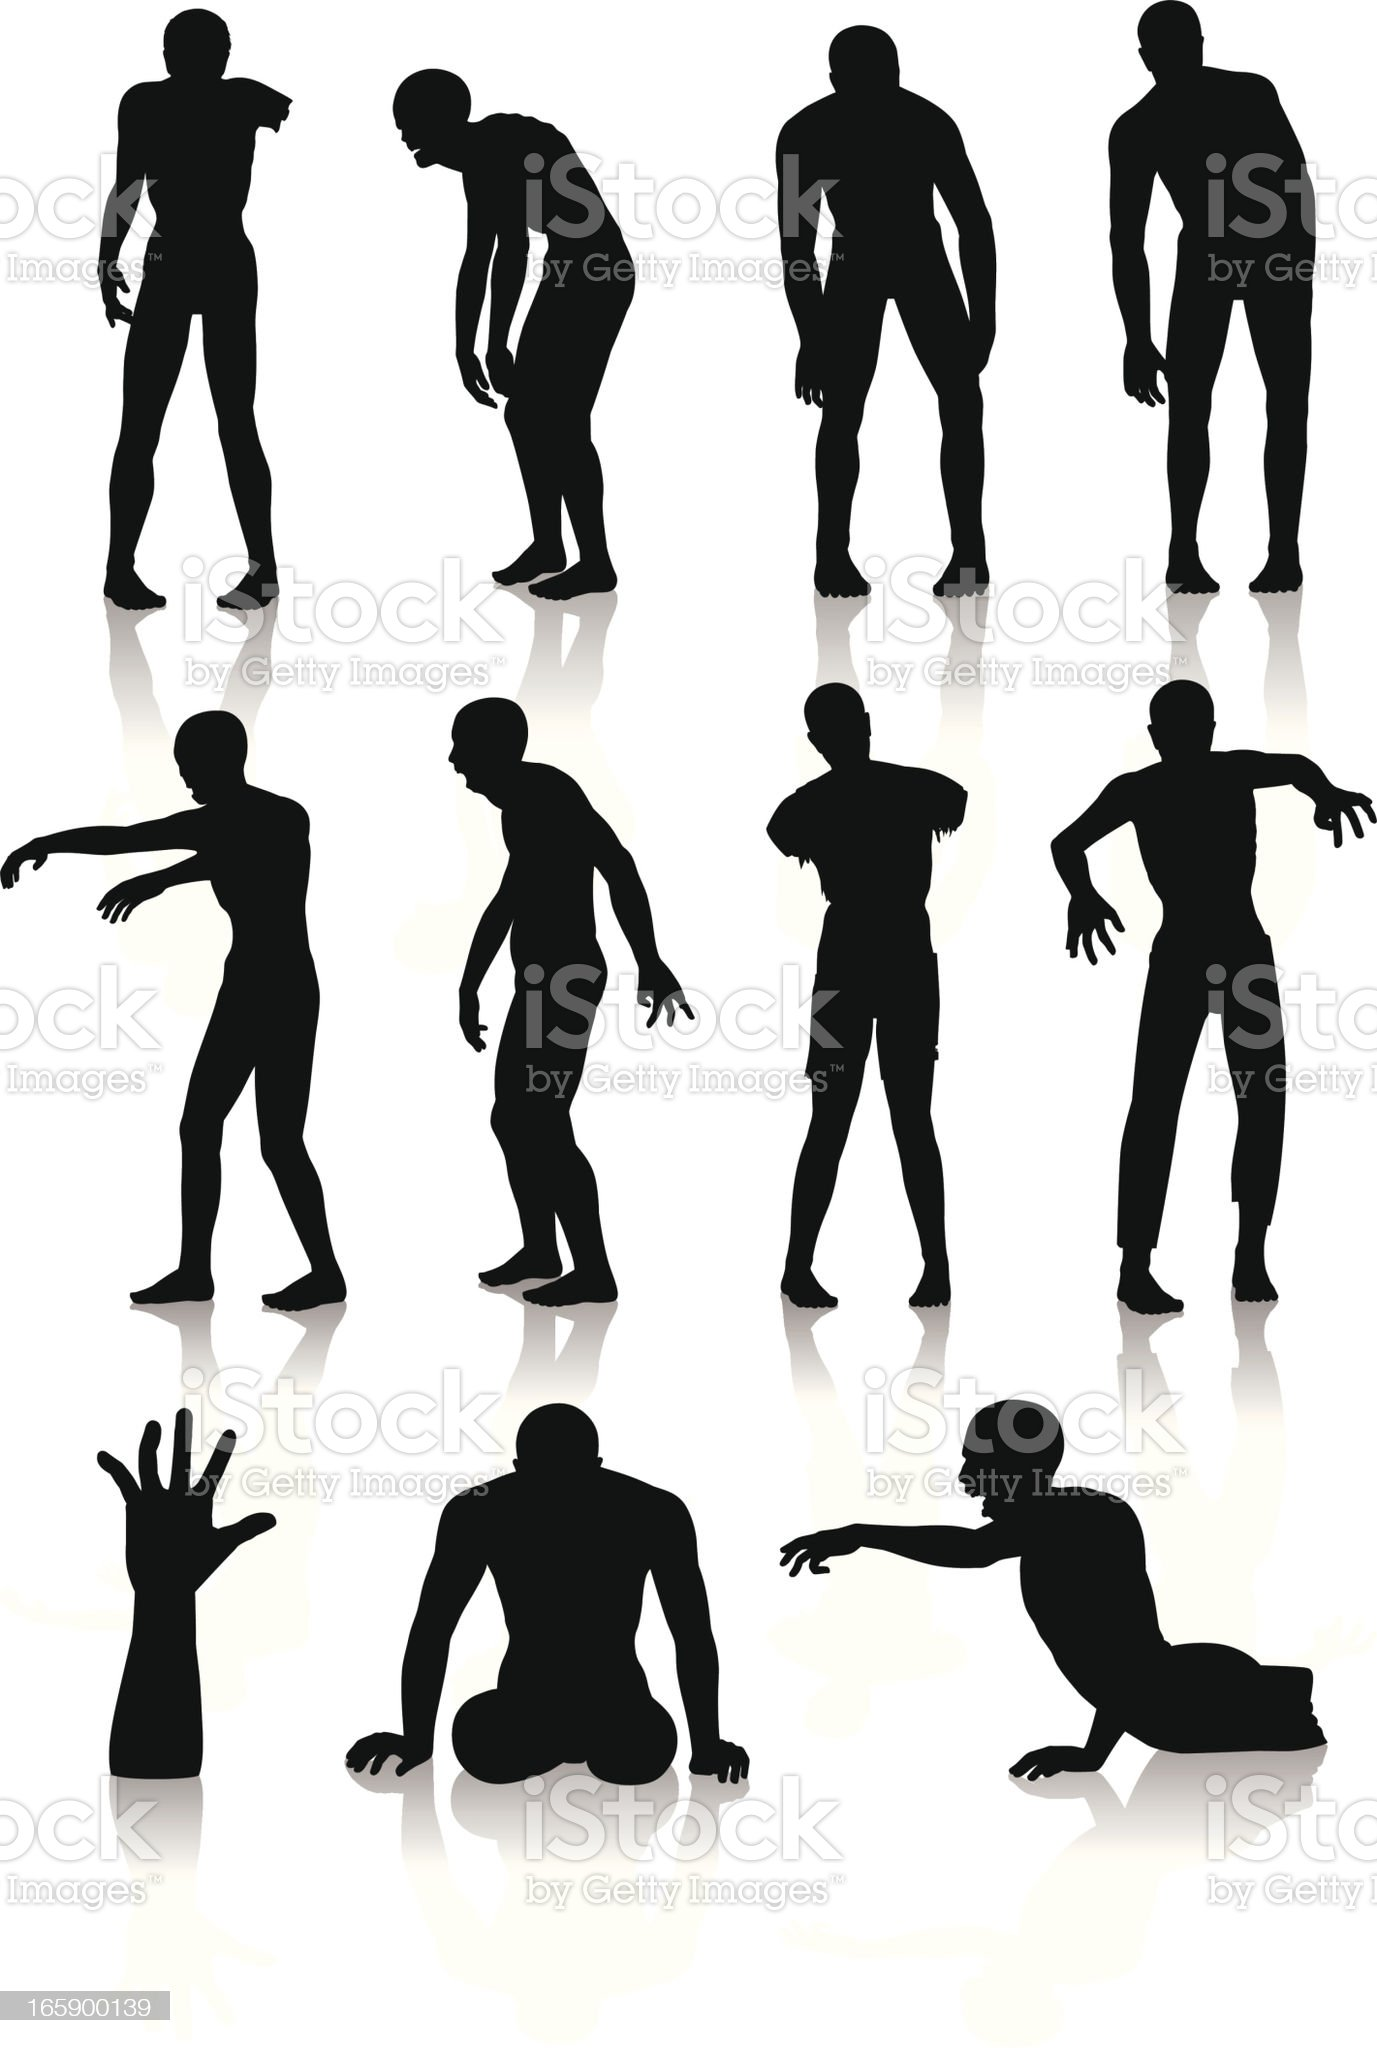 Isolated silhouettes of zombies royalty-free stock vector art